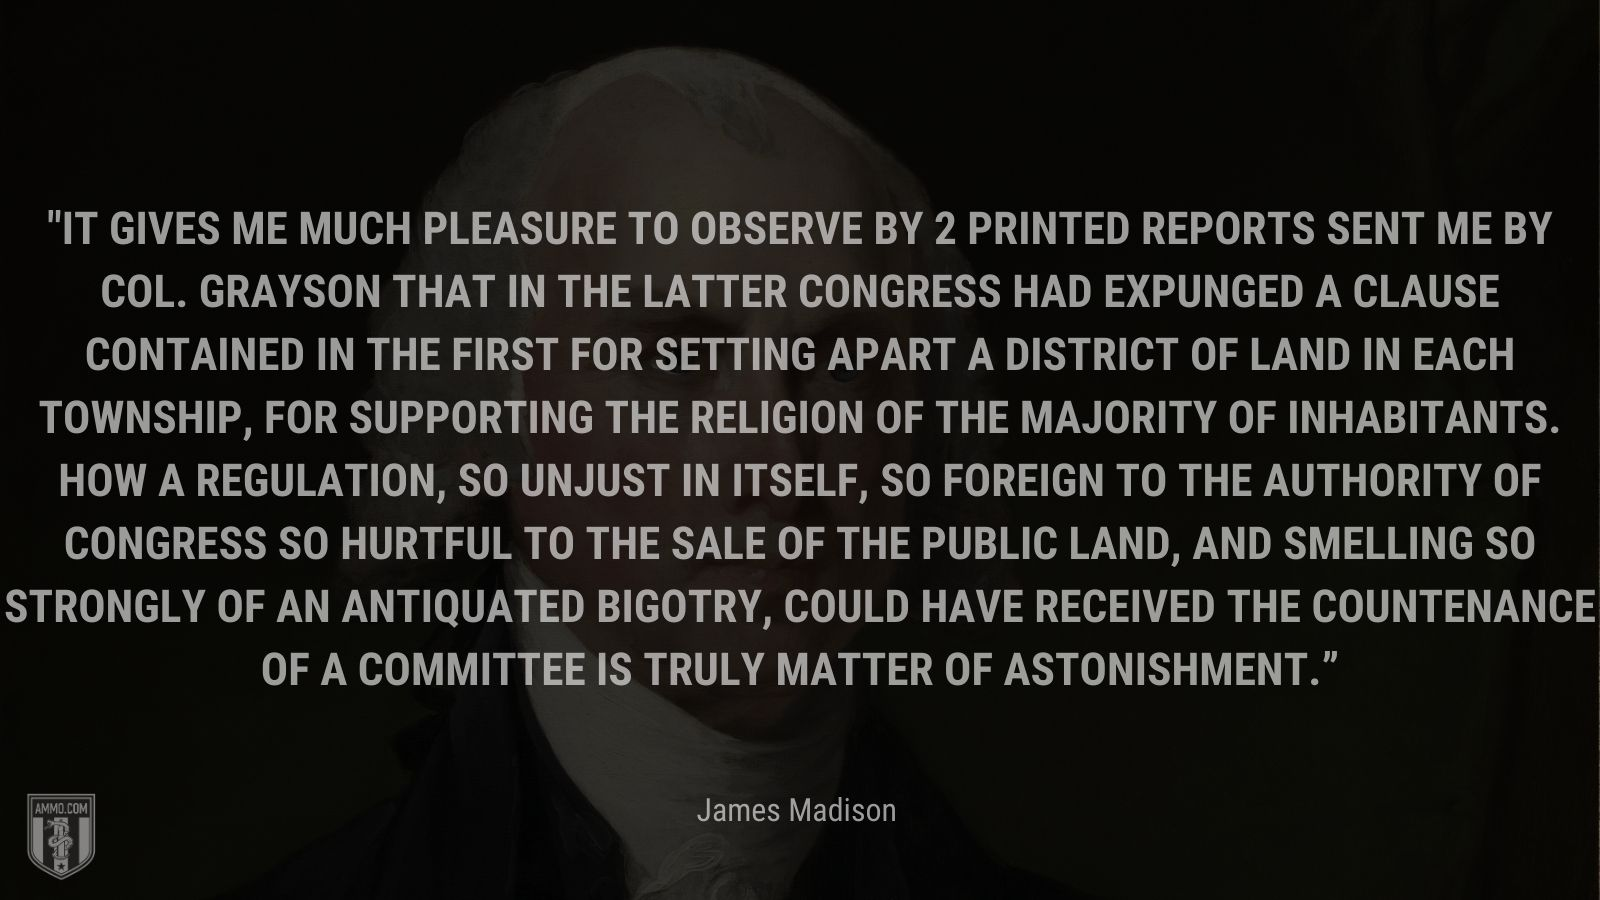 """""""It gives me much pleasure to observe by 2 printed reports sent me by Col. Grayson that in the latter Congress had expunged a clause contained in the first for setting apart a district of land in each Township, for supporting the Religion of the Majority of inhabitants. How a regulation, so unjust in itself, so foreign to the Authority of Congress so hurtful to the sale of the public land, and smelling so strongly of an antiquated Bigotry, could have received the countenance of a Committee is truly matter of astonishment."""" - James Madison"""